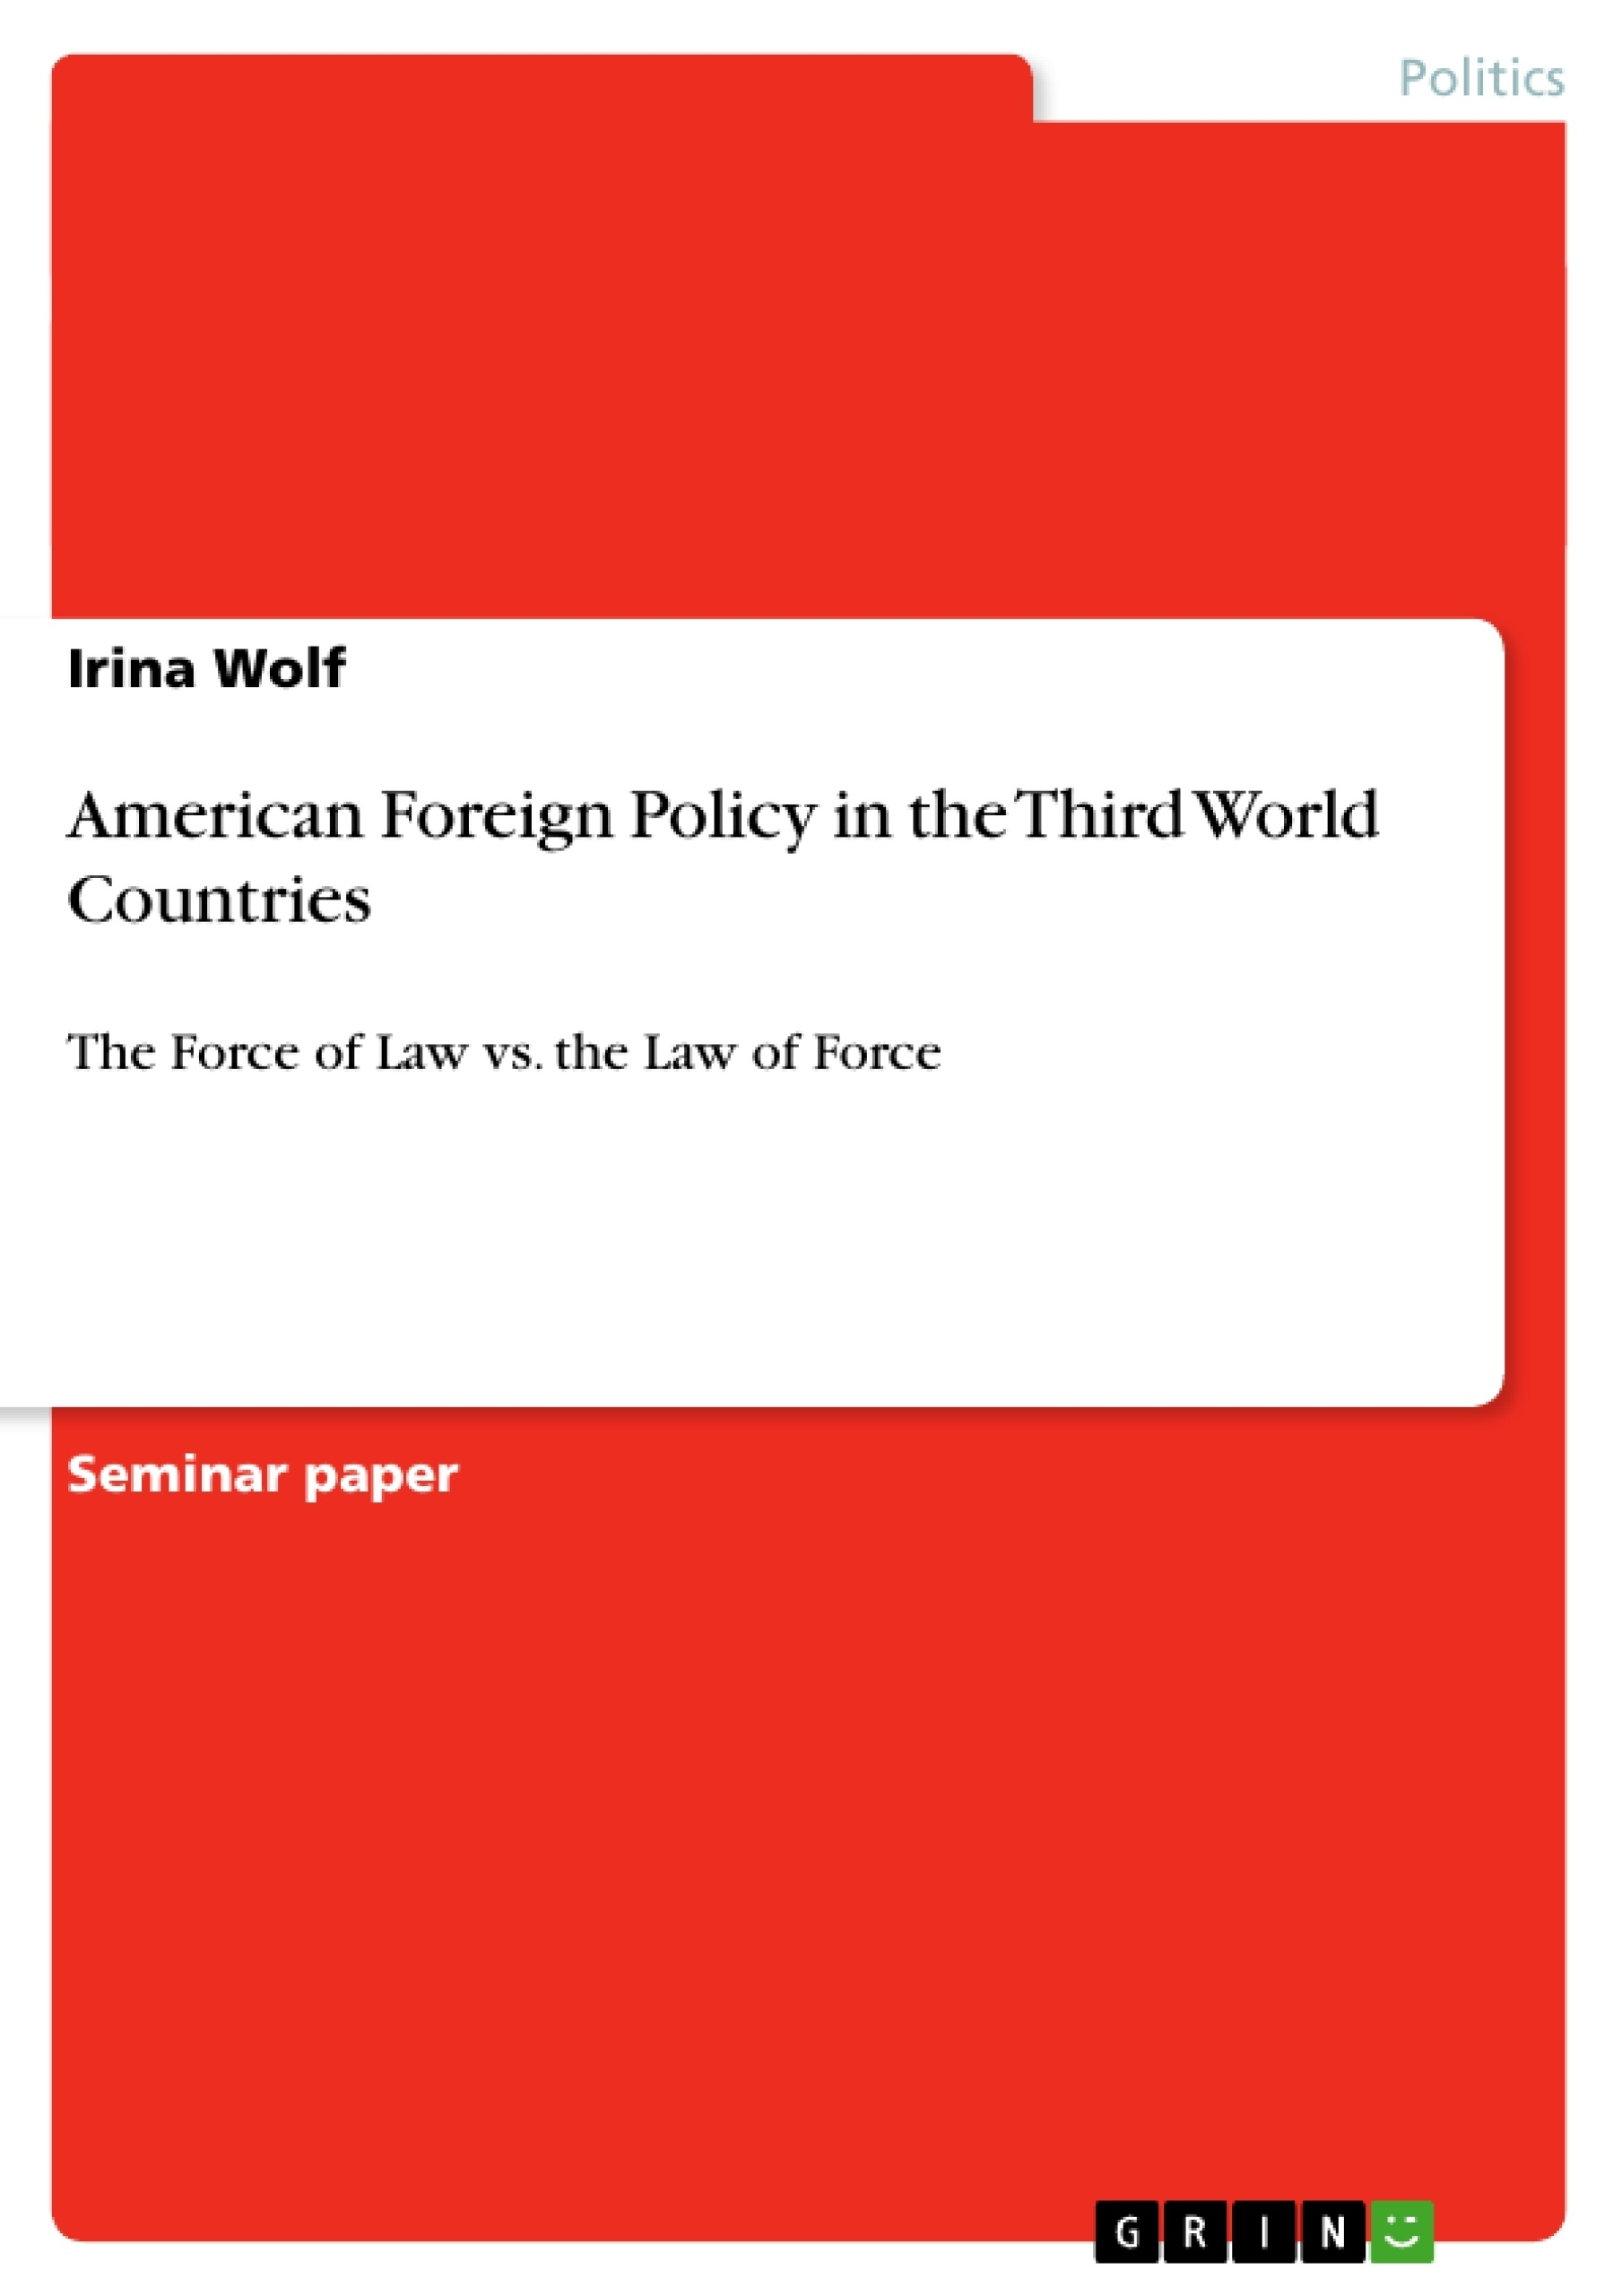 Title: American Foreign Policy in the Third World Countries